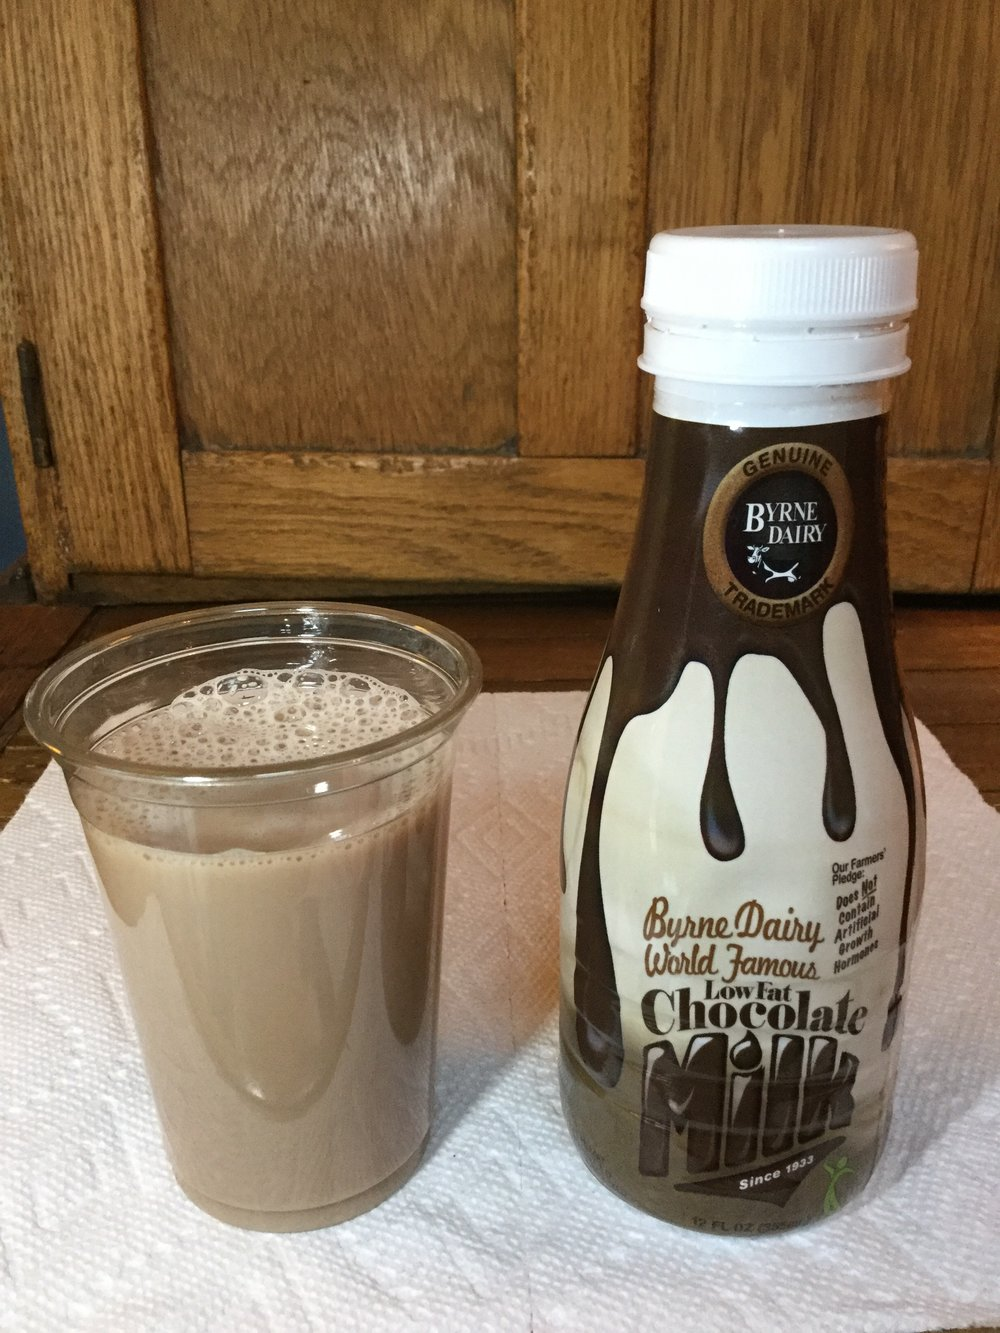 Byrne Dairy World Famous Low Fat Chocolate Milk Chocolate Milk Reviews